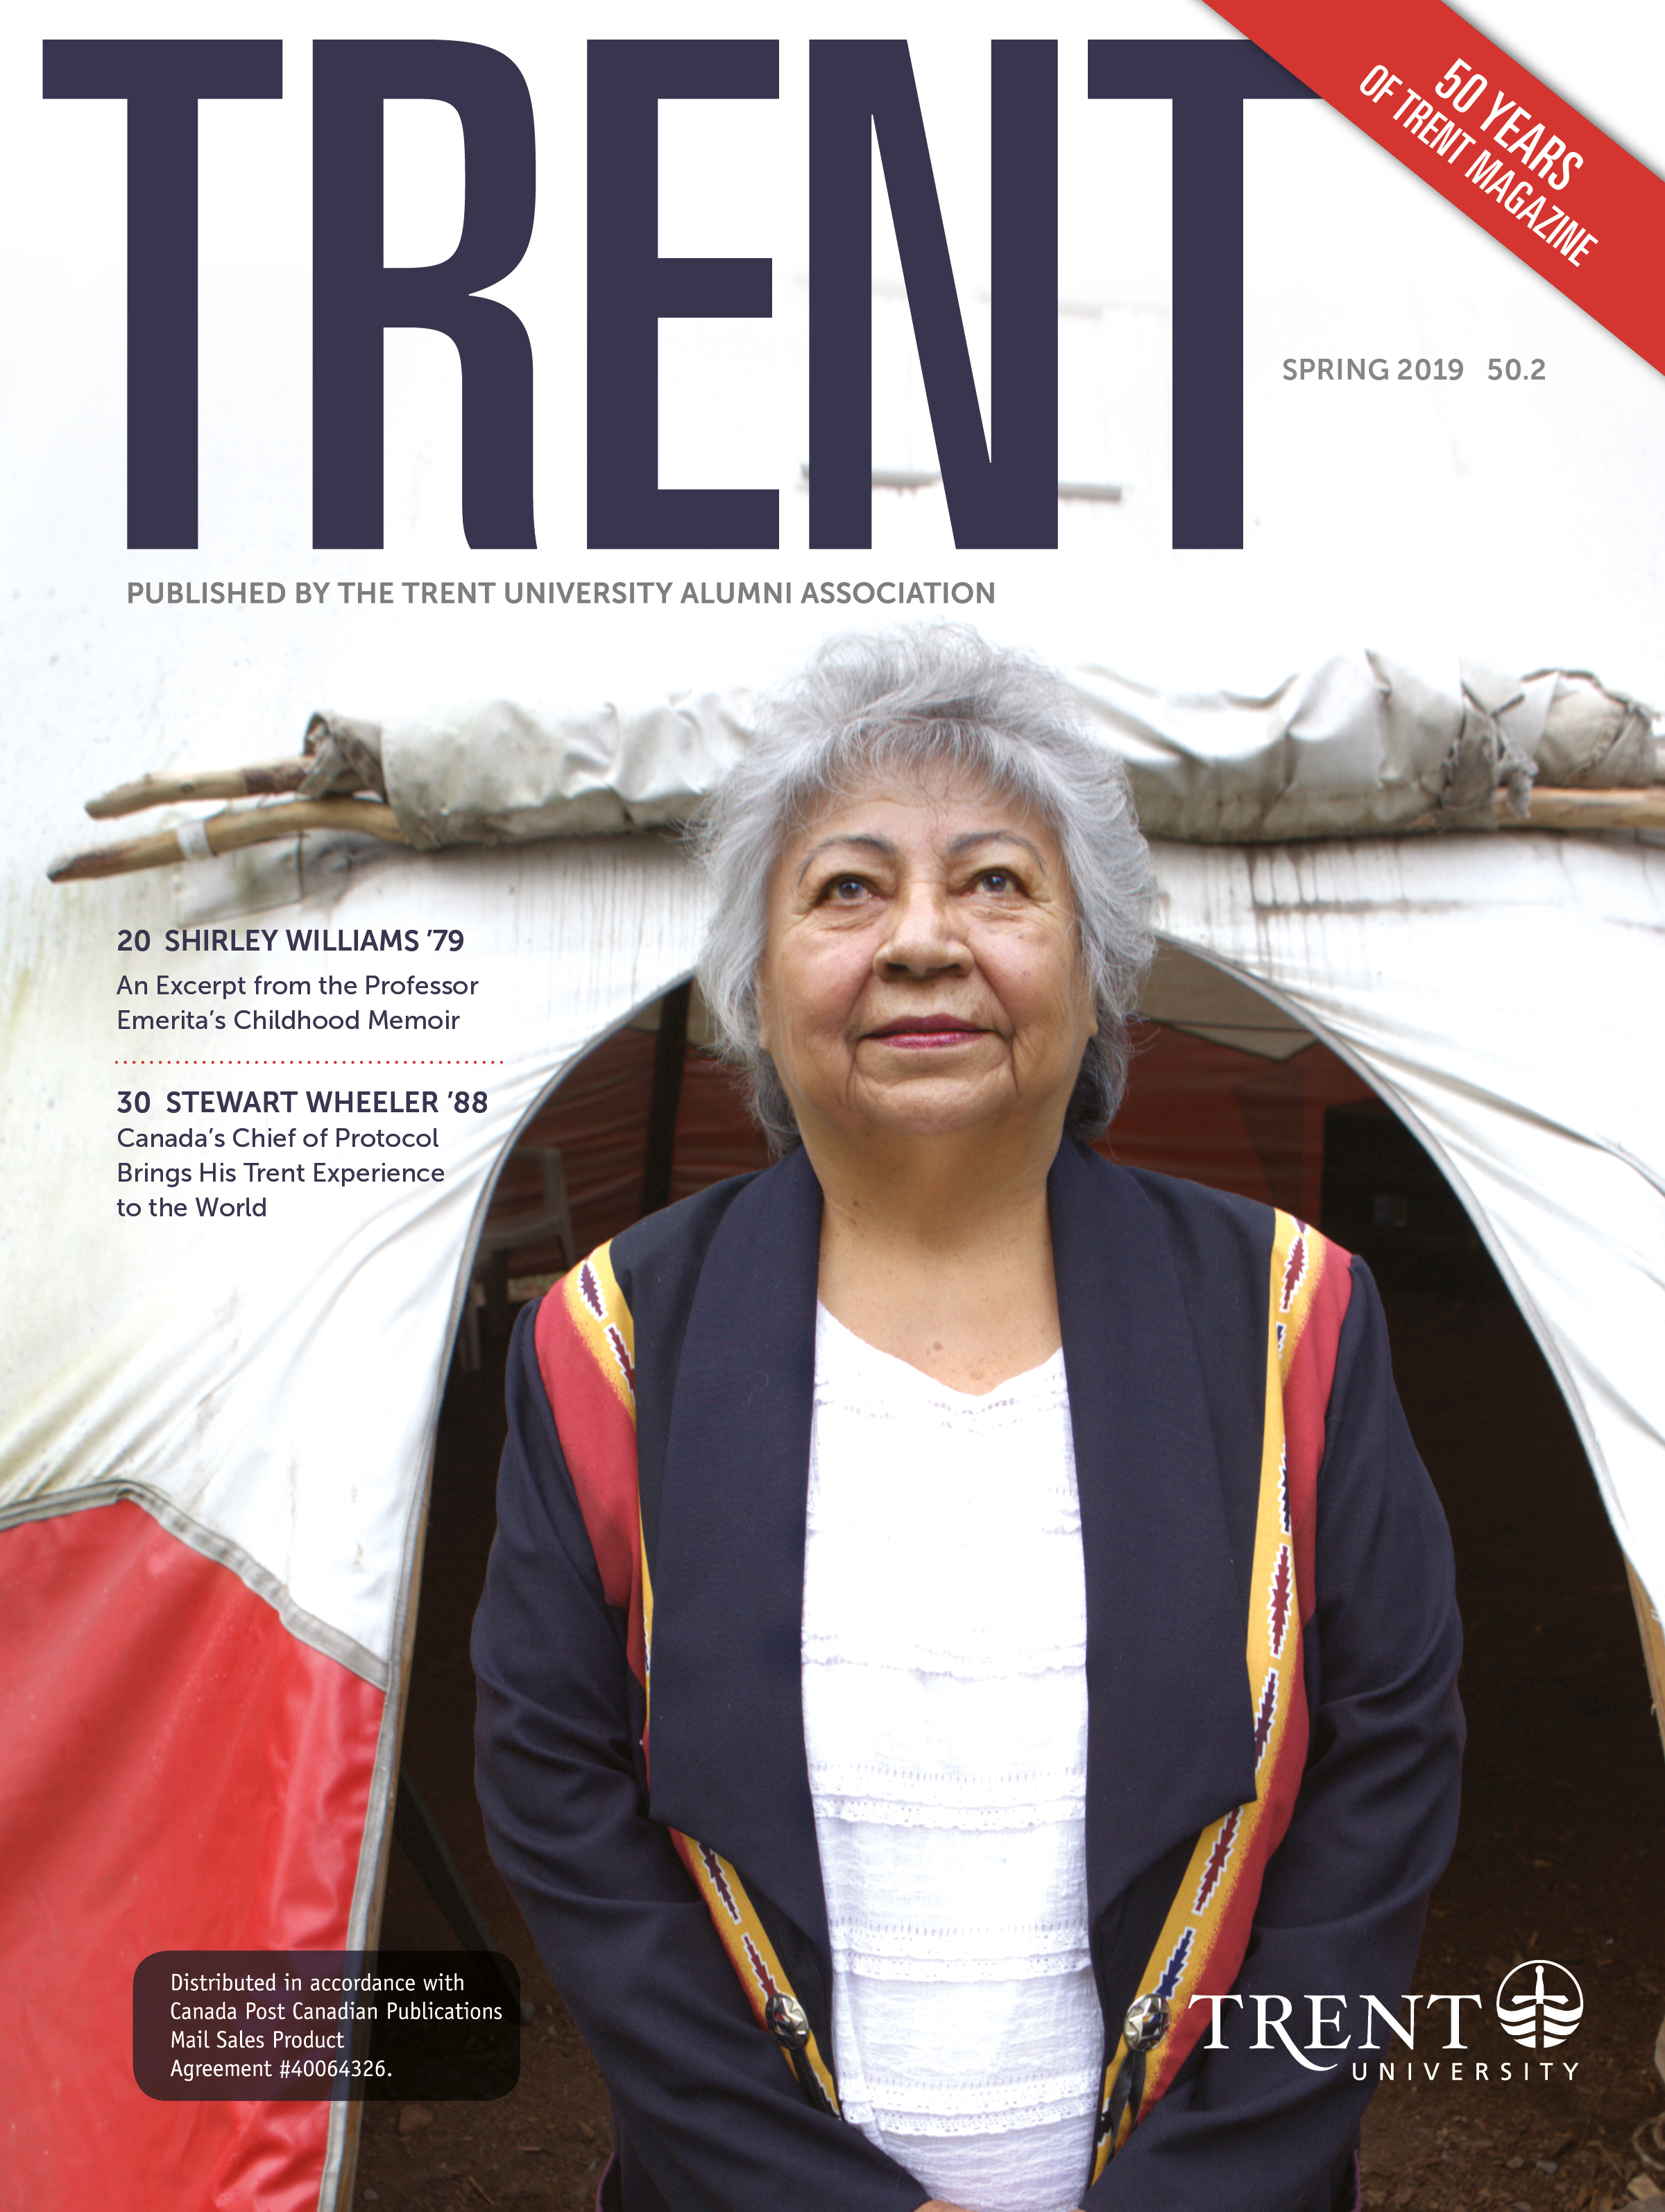 Trent Magazine Cover featuring Shirley Willaims '79